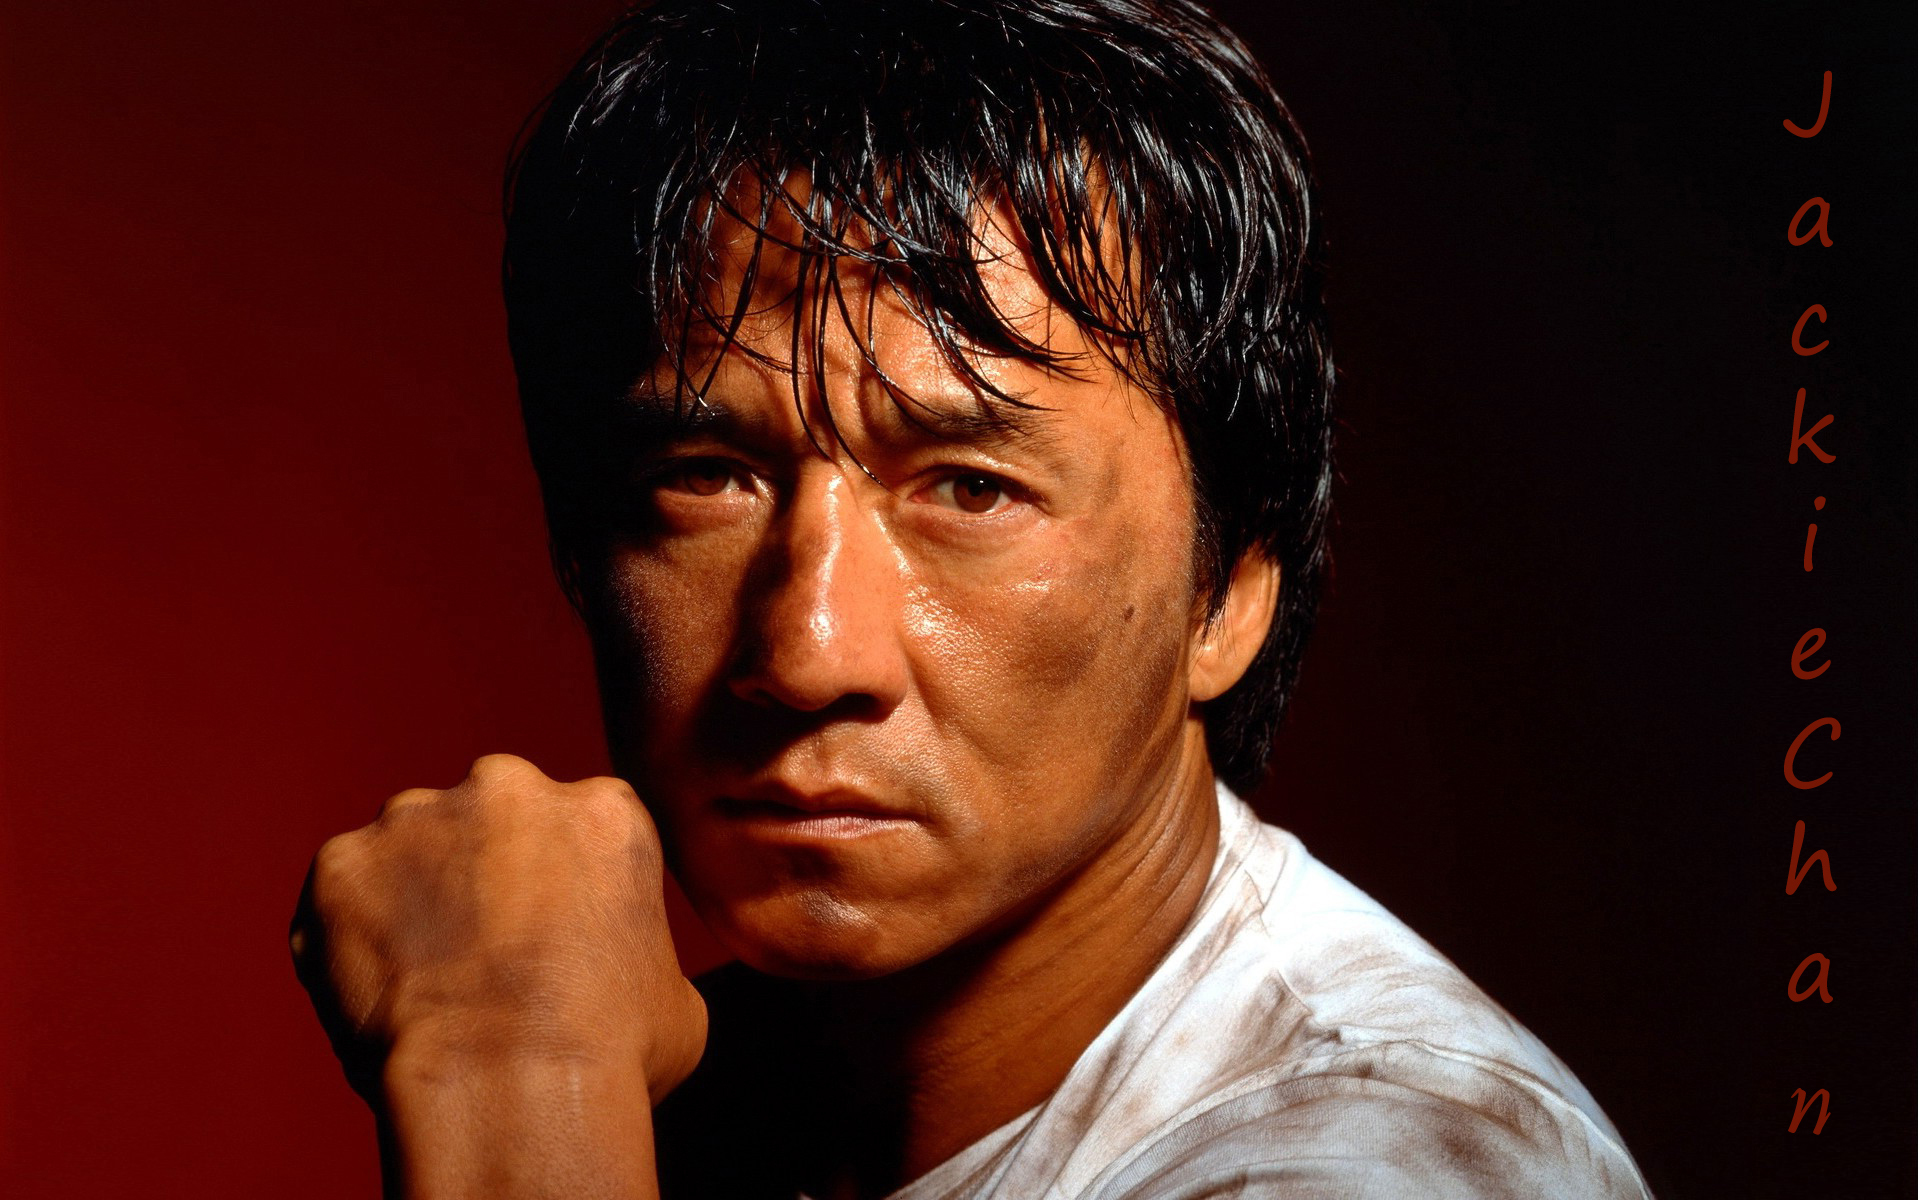 Jackie chan wallpapers images photos pictures backgrounds - Jackie chan wallpaper download ...